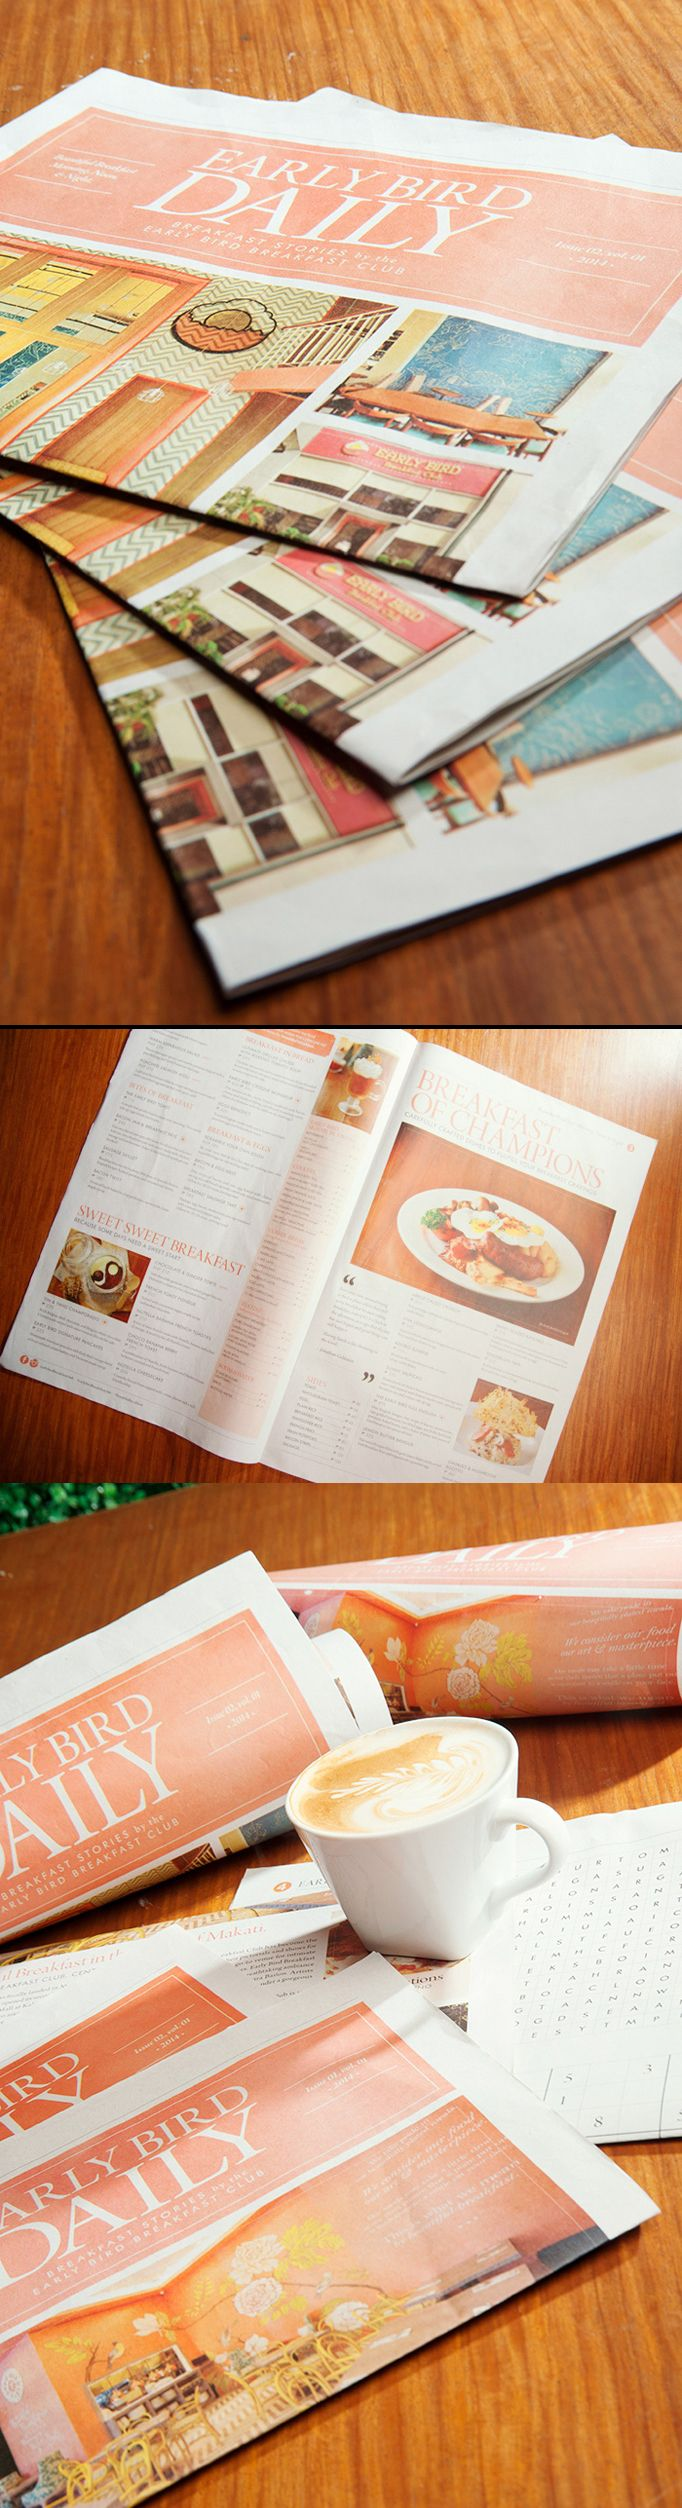 Loving this newspaper concept for menus. This particularly works for the restaurant's brunch menu. Designed by: Antidote Brand Divergence Inc.: http://www.antidotebranding.com/ #designisvital http://www.paliosdesign.com